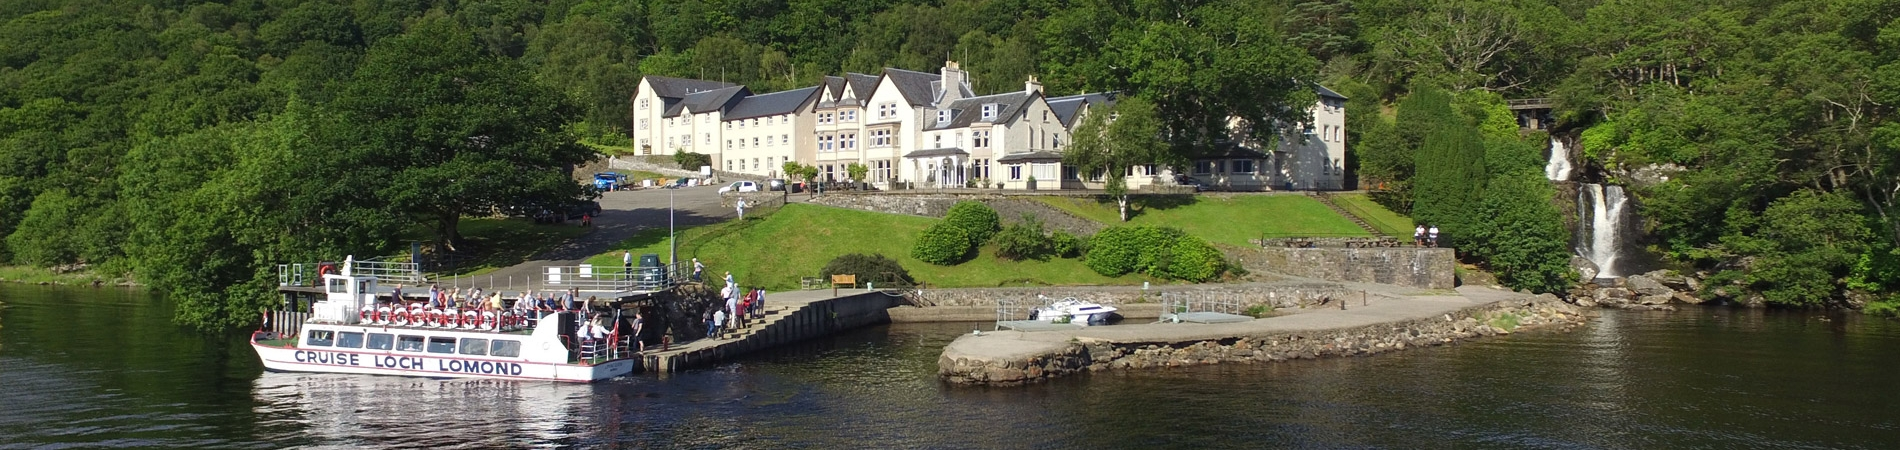 The Inversnaid Hotel overlooking Loch Lomond